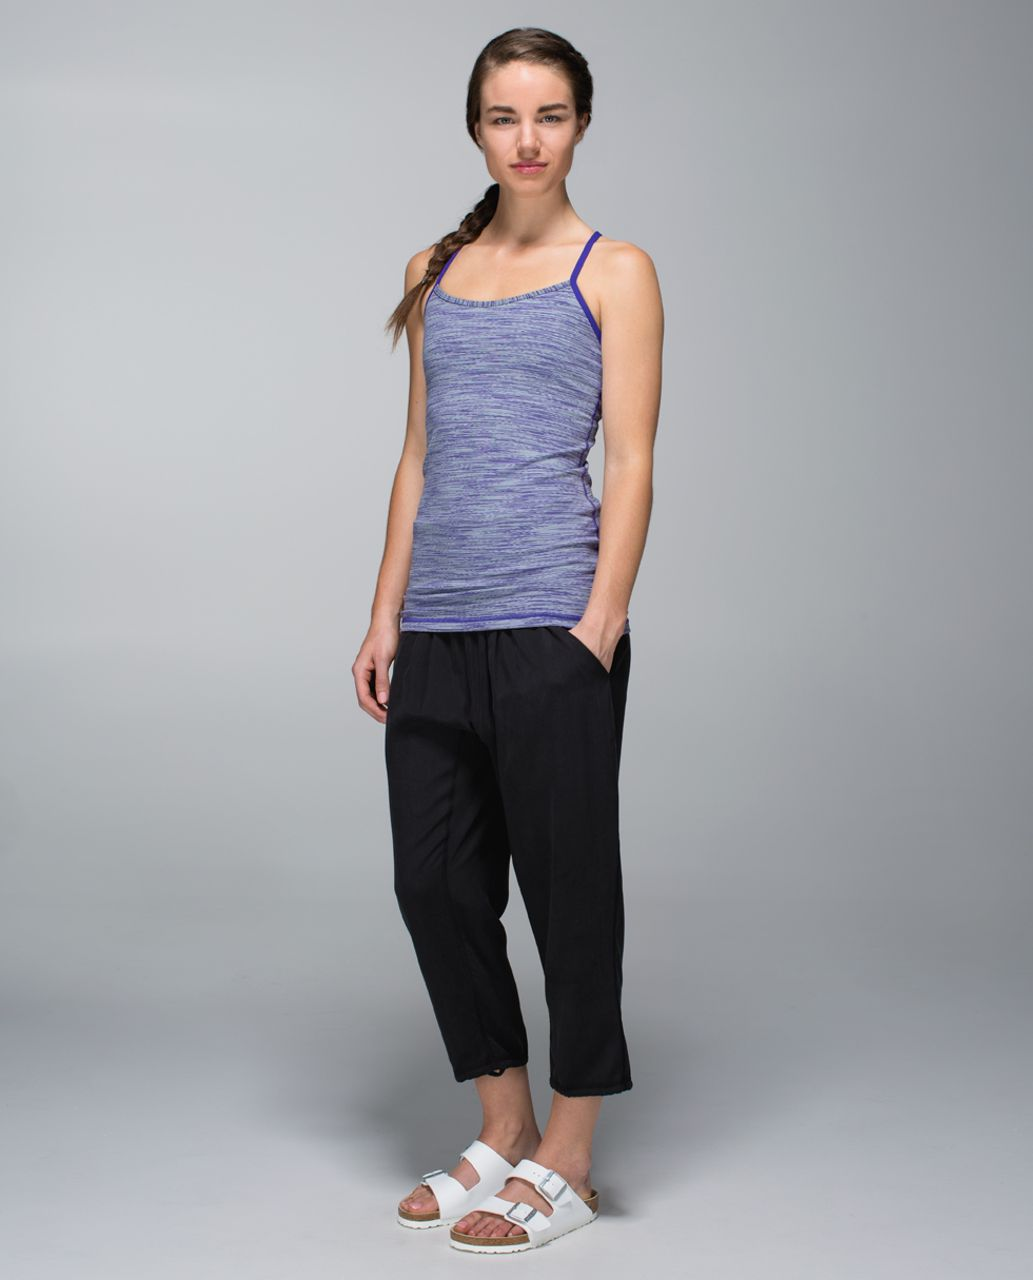 Lululemon Power Y Tank *Luon - Wee Are From Space Brusied Berry / Bruised Berry